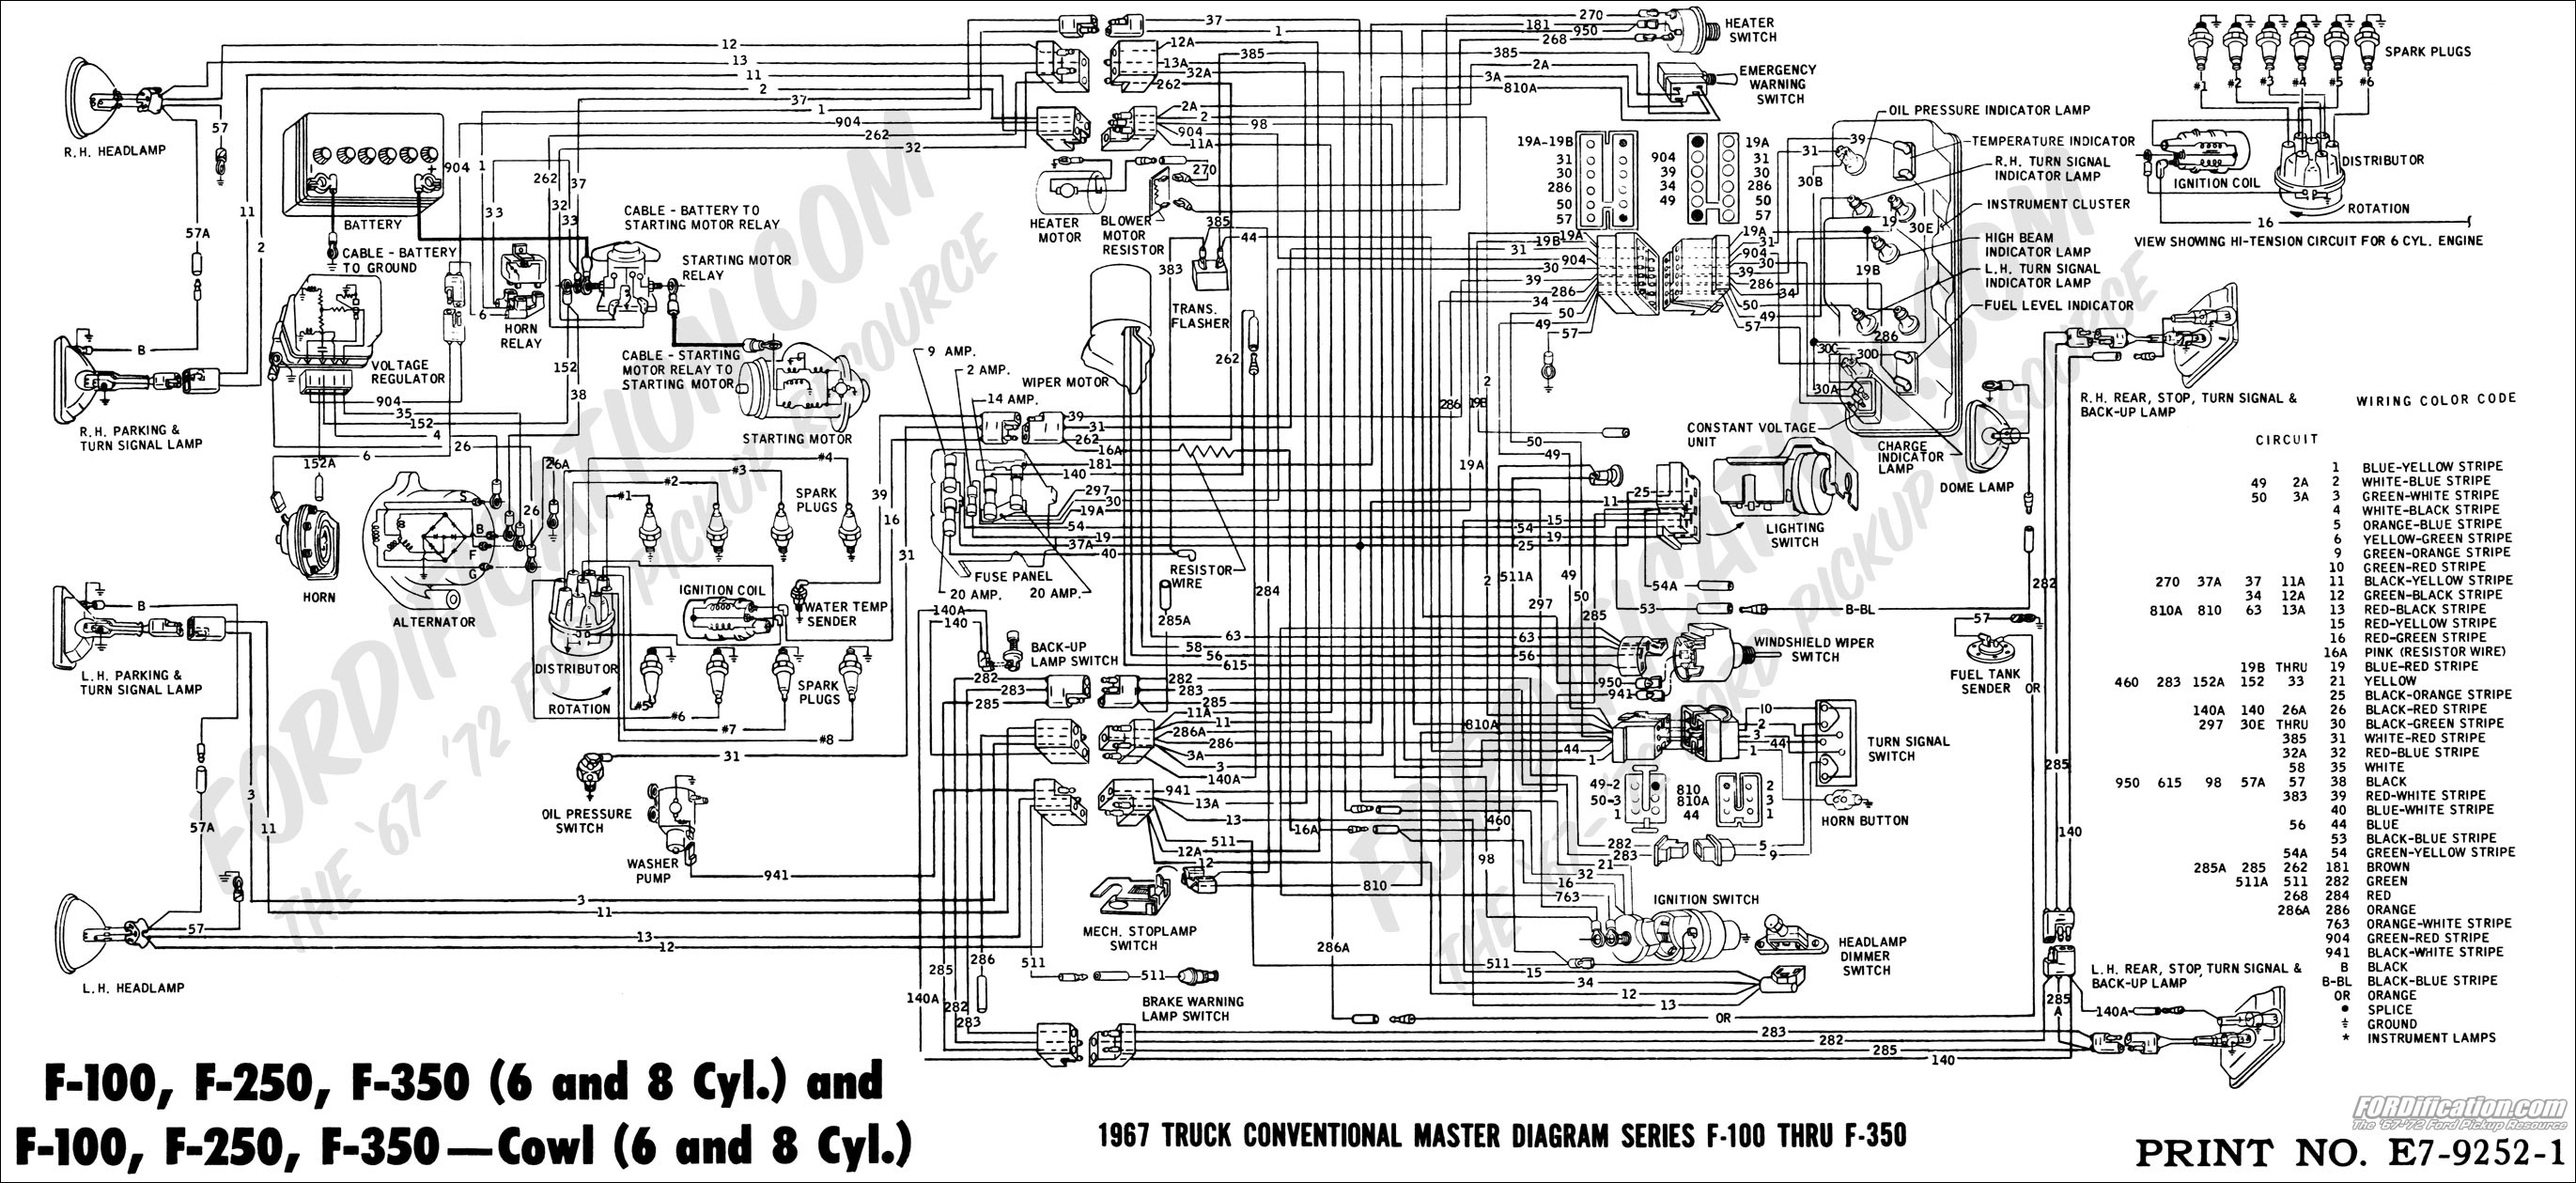 Ford F700 Wiring Diagrams - Engine Distributor Diagram for Wiring Diagram  SchematicsWiring Diagram Schematics